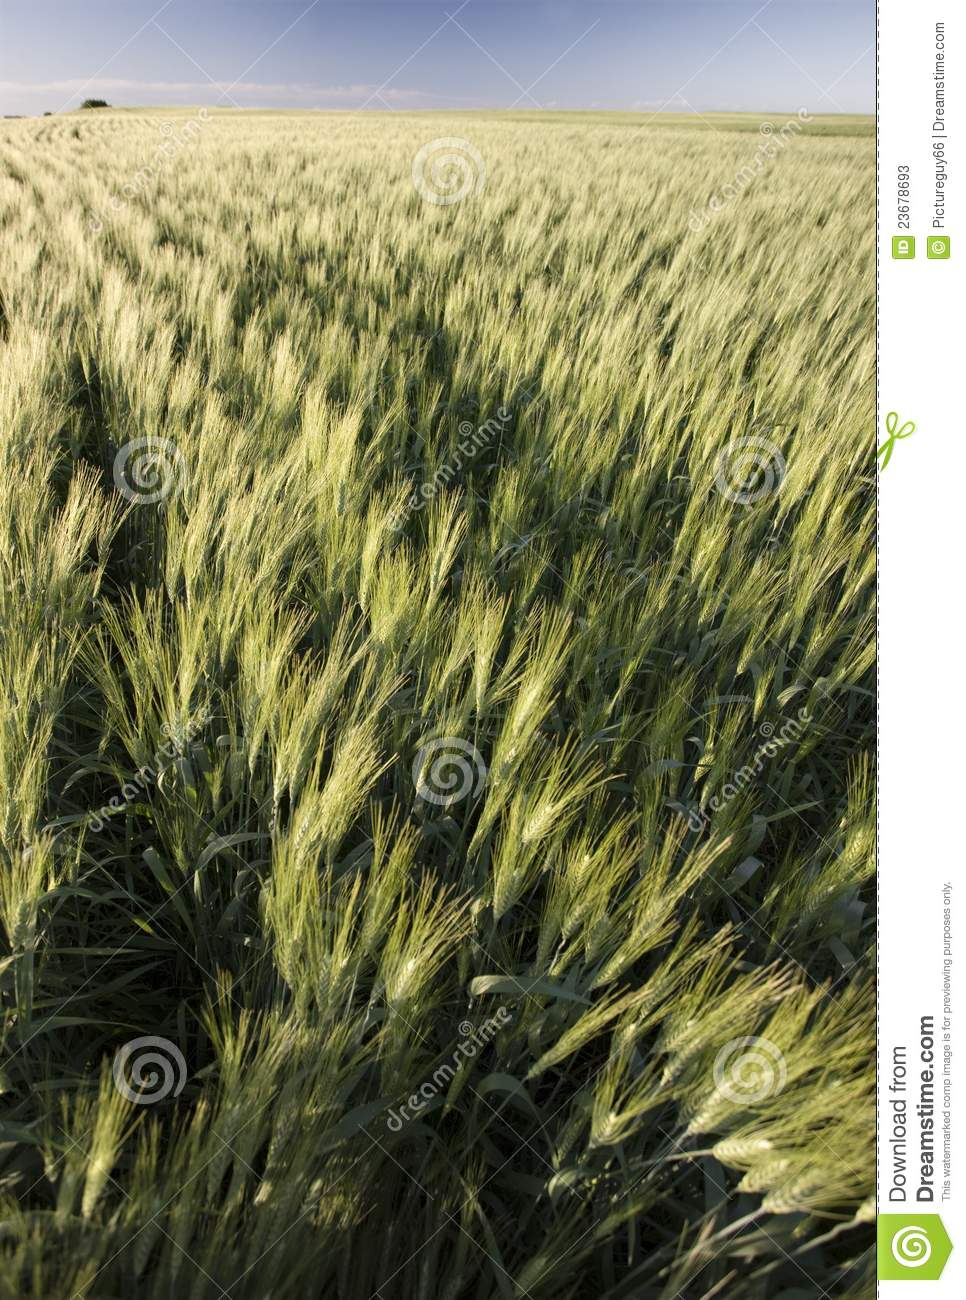 Prairie Crop With Weeds Stock Image. Image Of Green